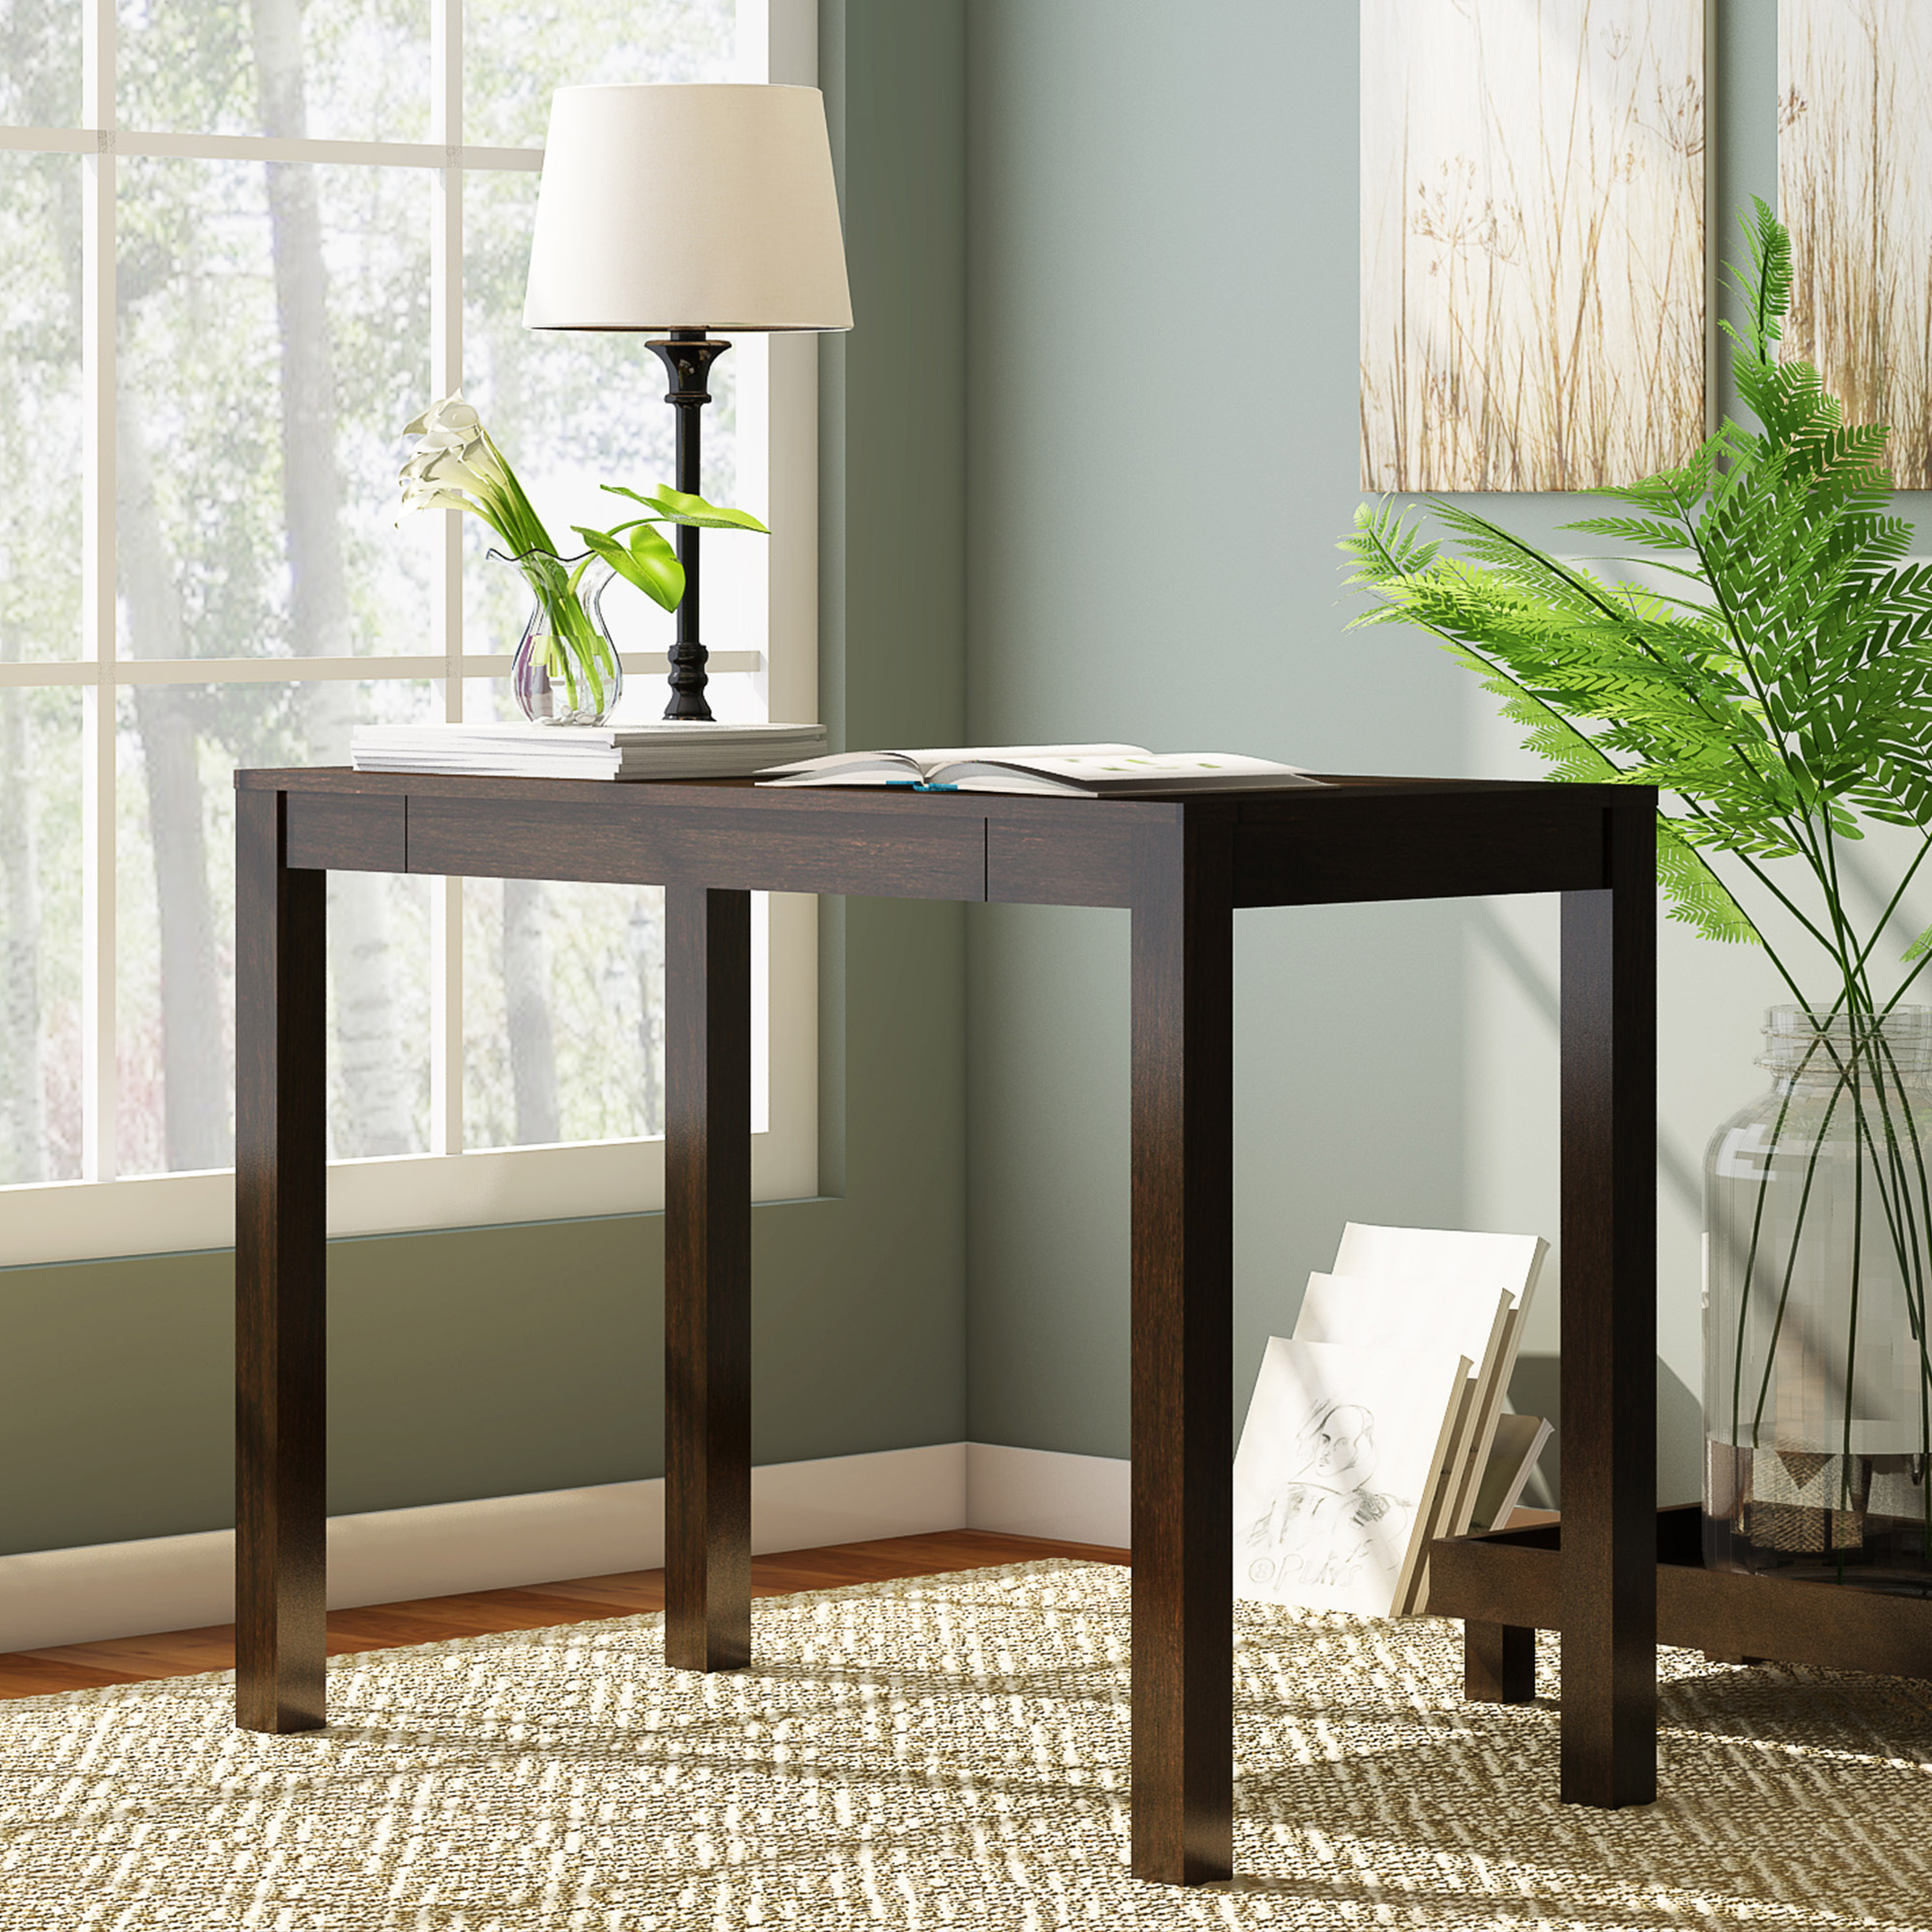 mainstays parsons end table with drawer multiple colors writing desk storage one diy legs unique glass top coffee tables asian inspired dark wood stain home filing cabinet skinny